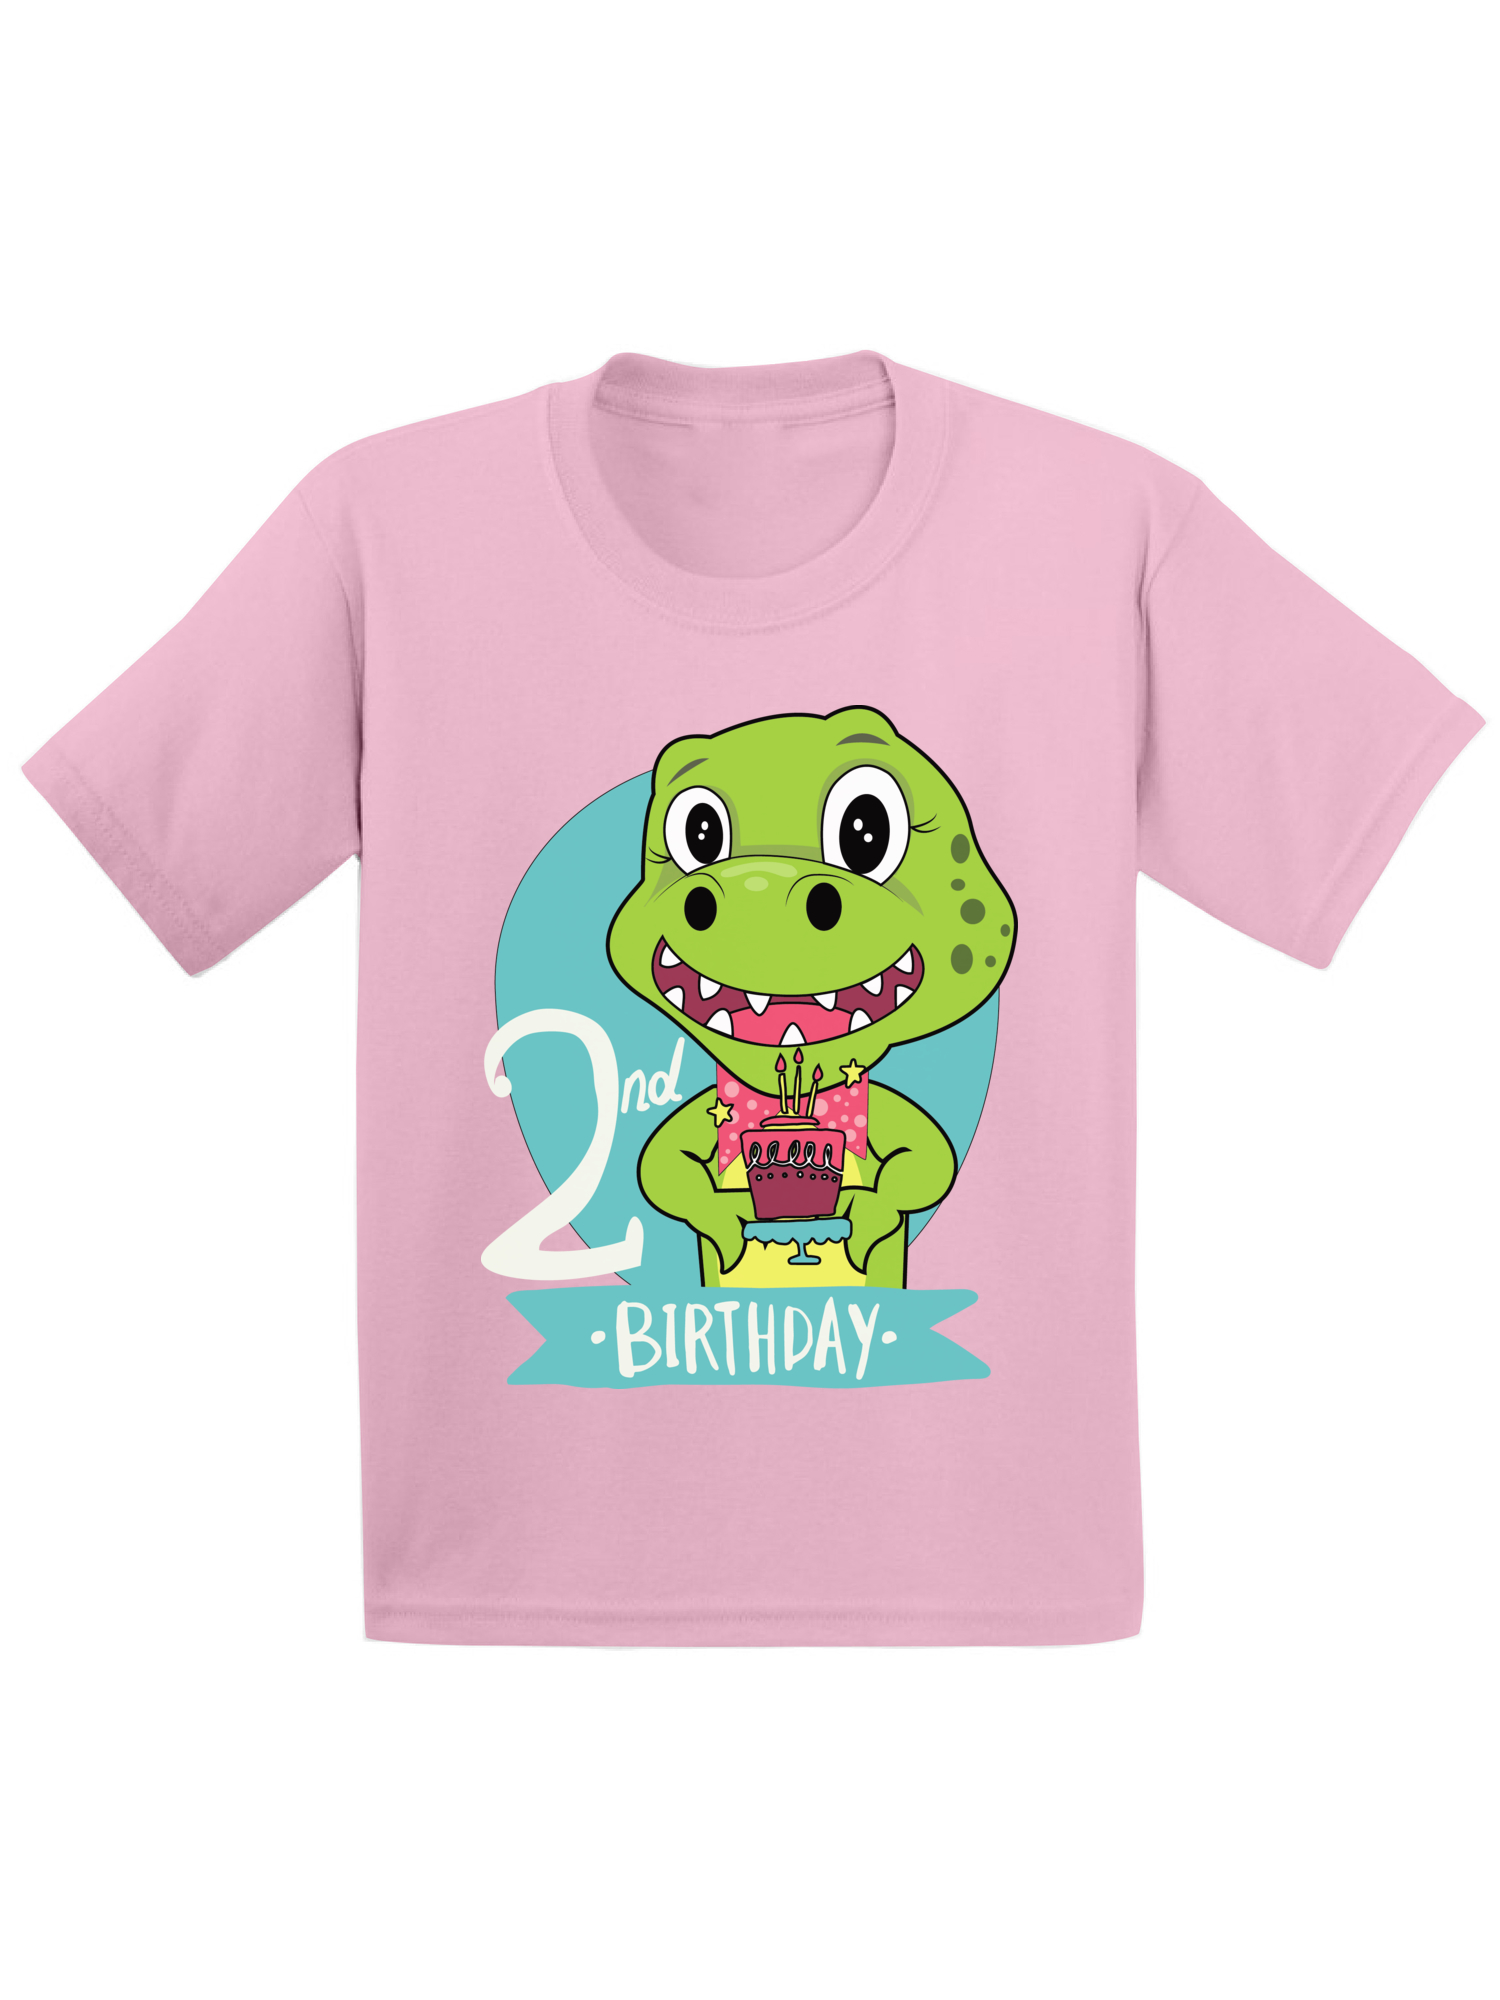 Awkward Styles Dinosaur Birthday Infant Shirt Gifts For 2 Year Old Baby Boy 2nd Girl Outfit Toddler